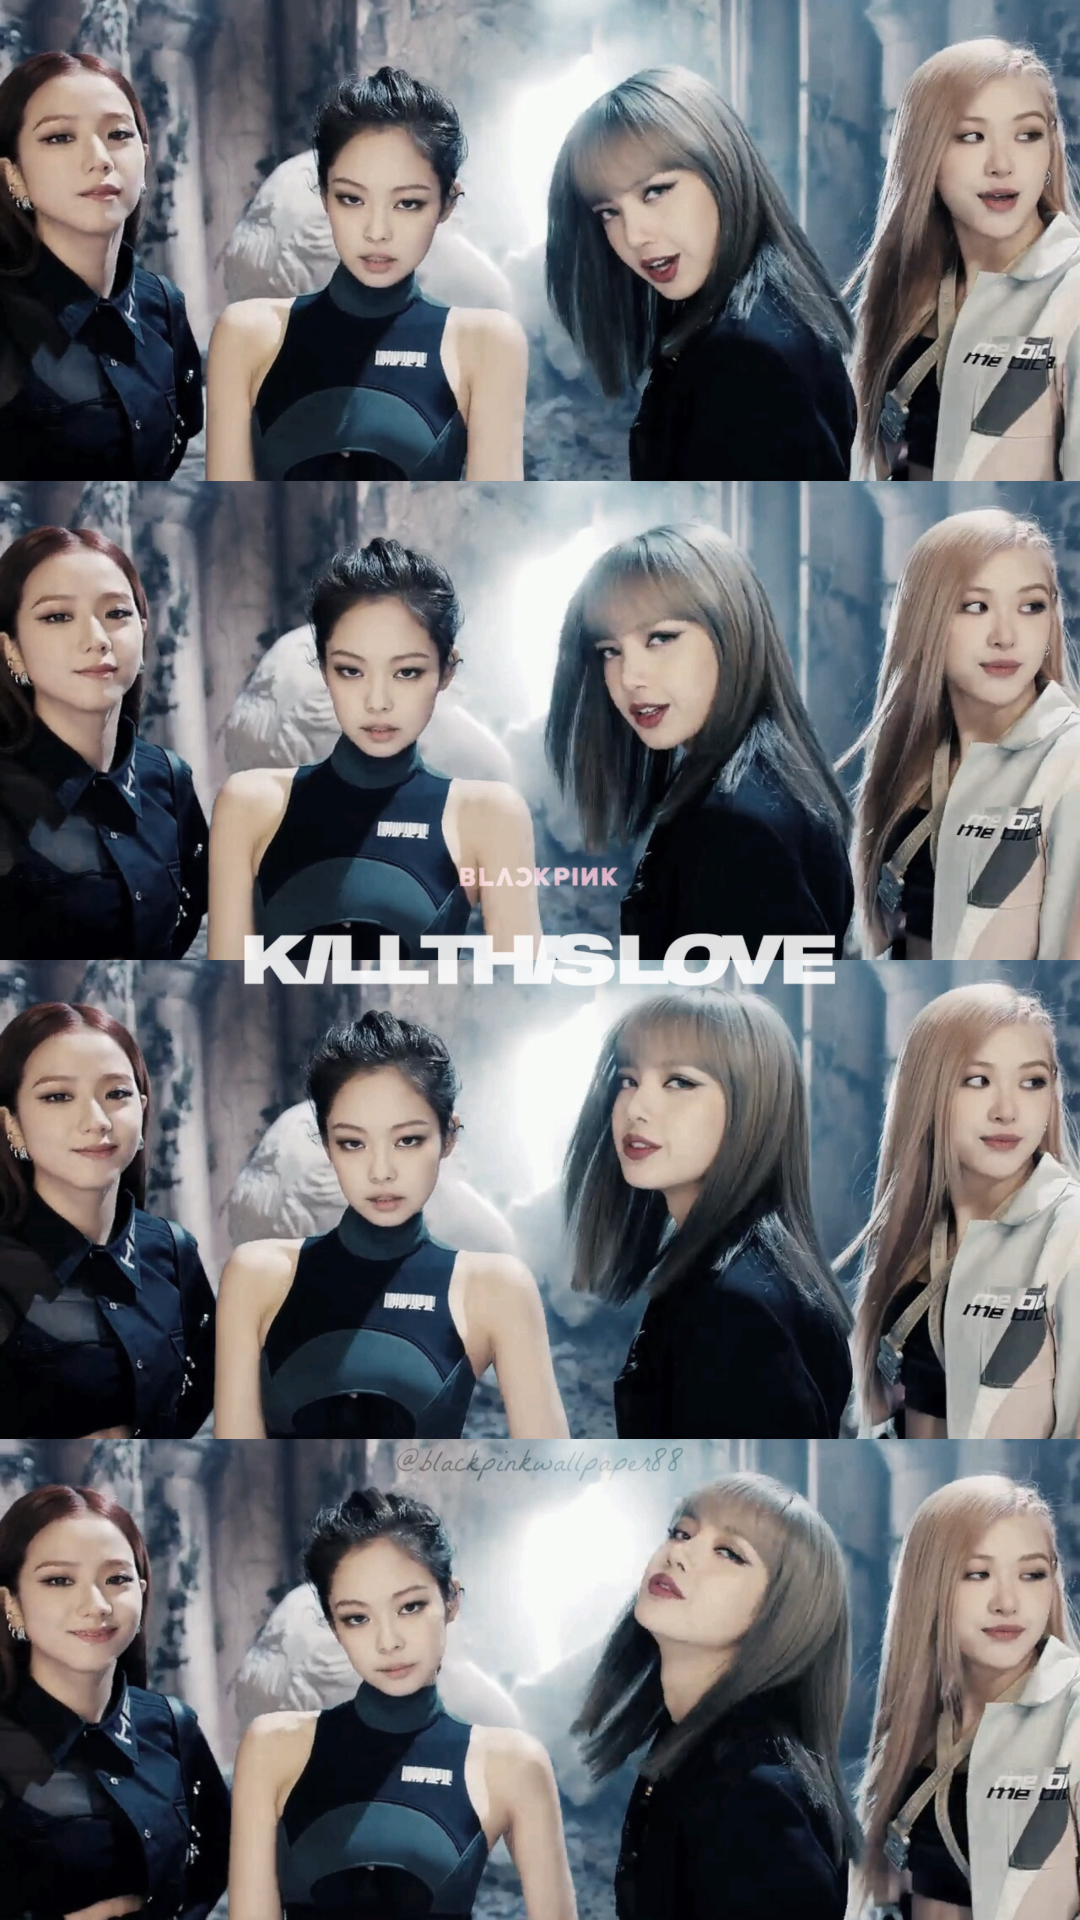 Blackpink Kill This Love Wallpapers Posted By Ryan Johnson